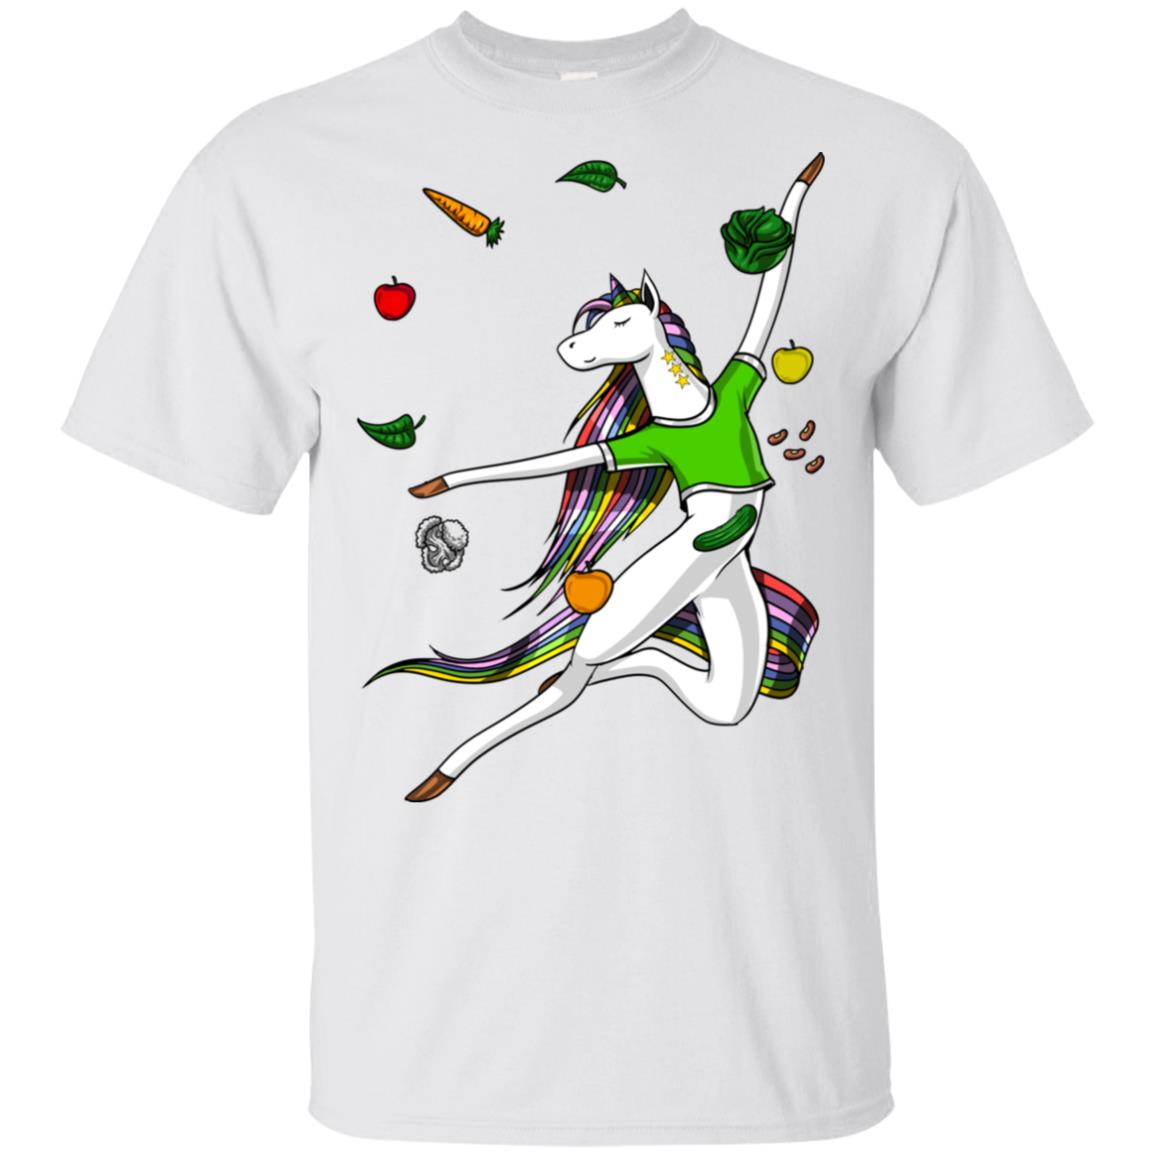 Unicorn Vegan Dance Vegetarian Vegetables Unisex Short Sleeve